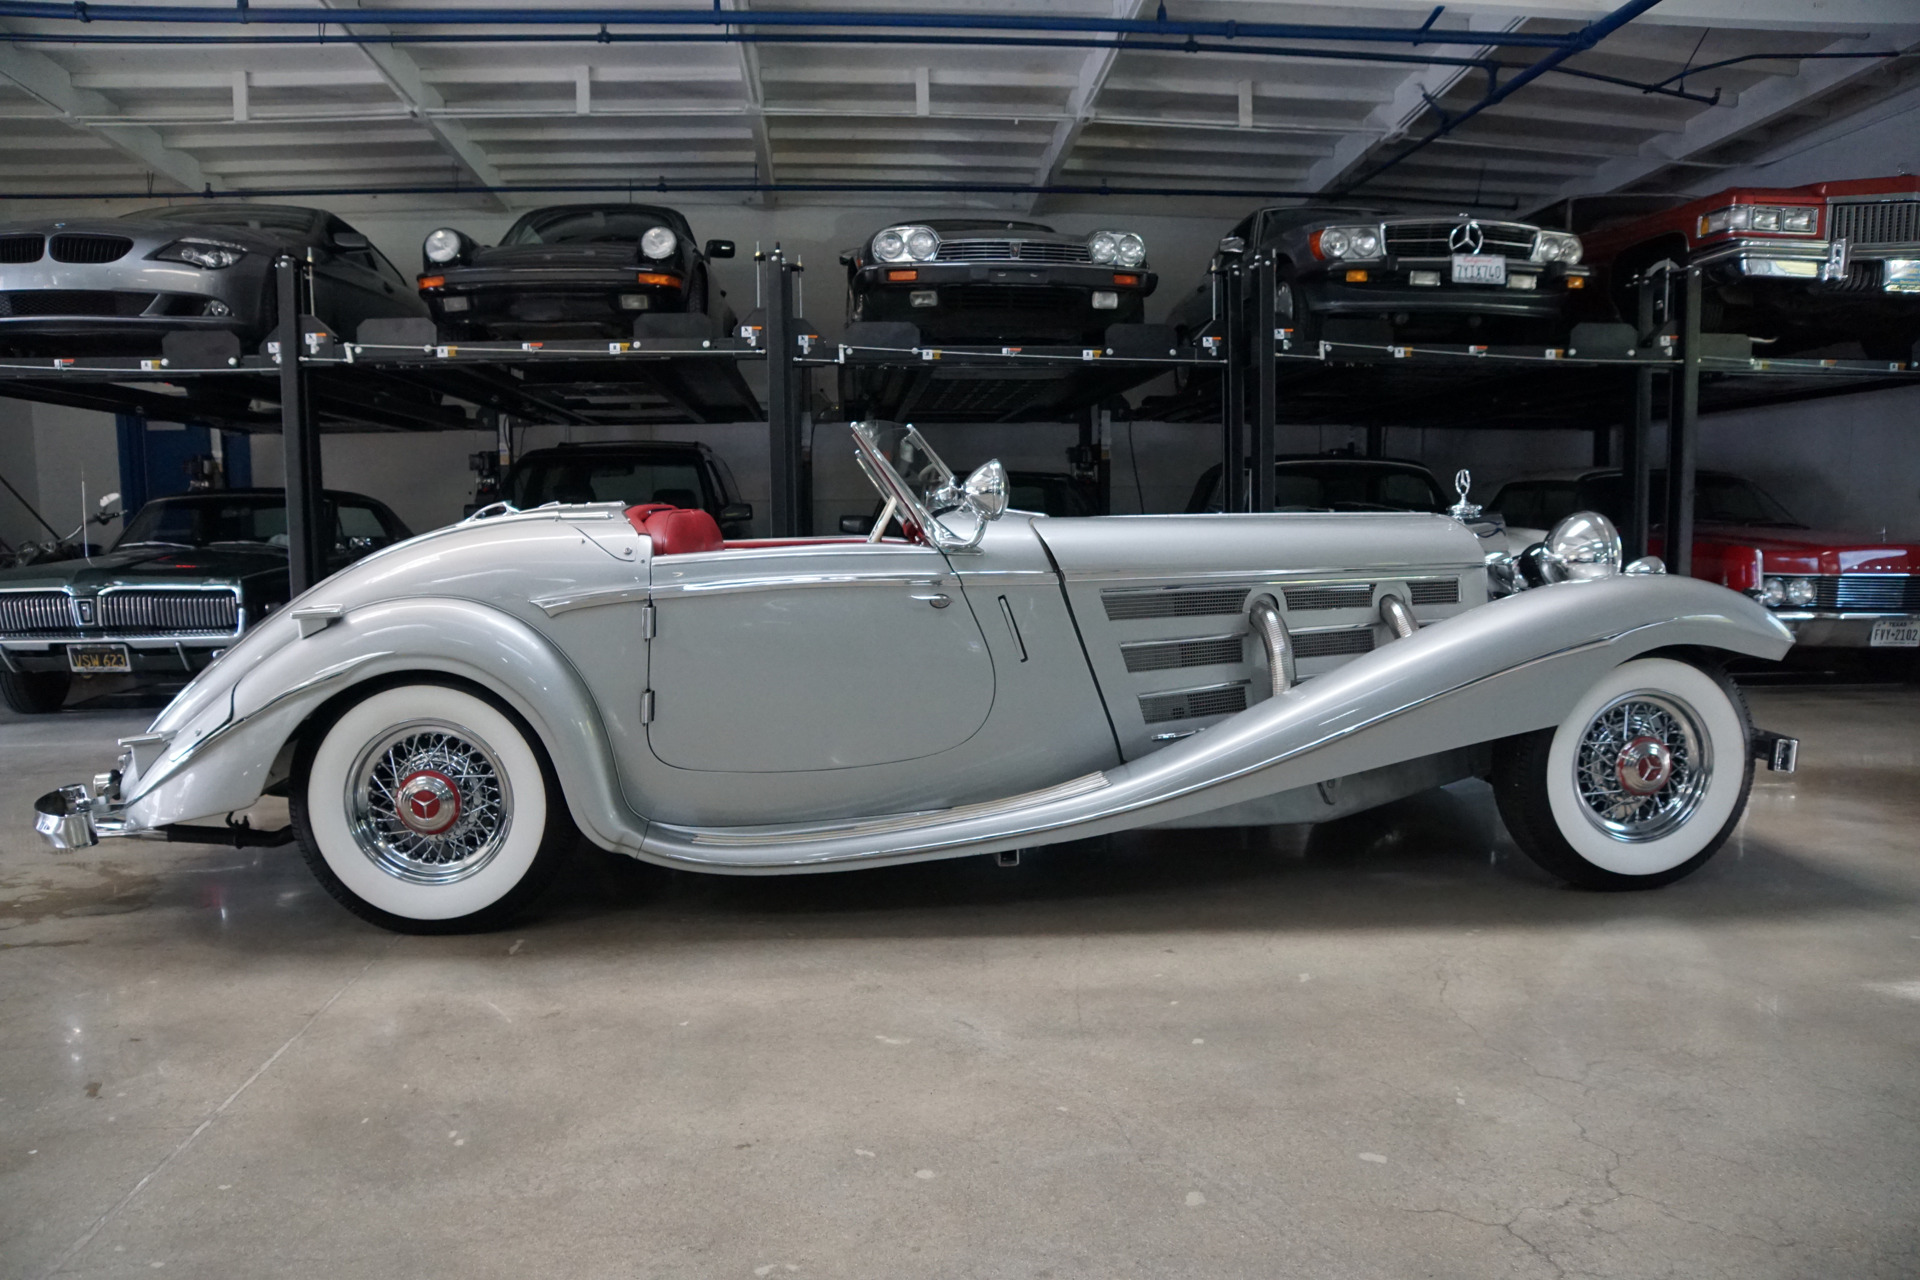 1936 mercedes benz 540k special roadster replica stock for 1936 mercedes benz 540k replica